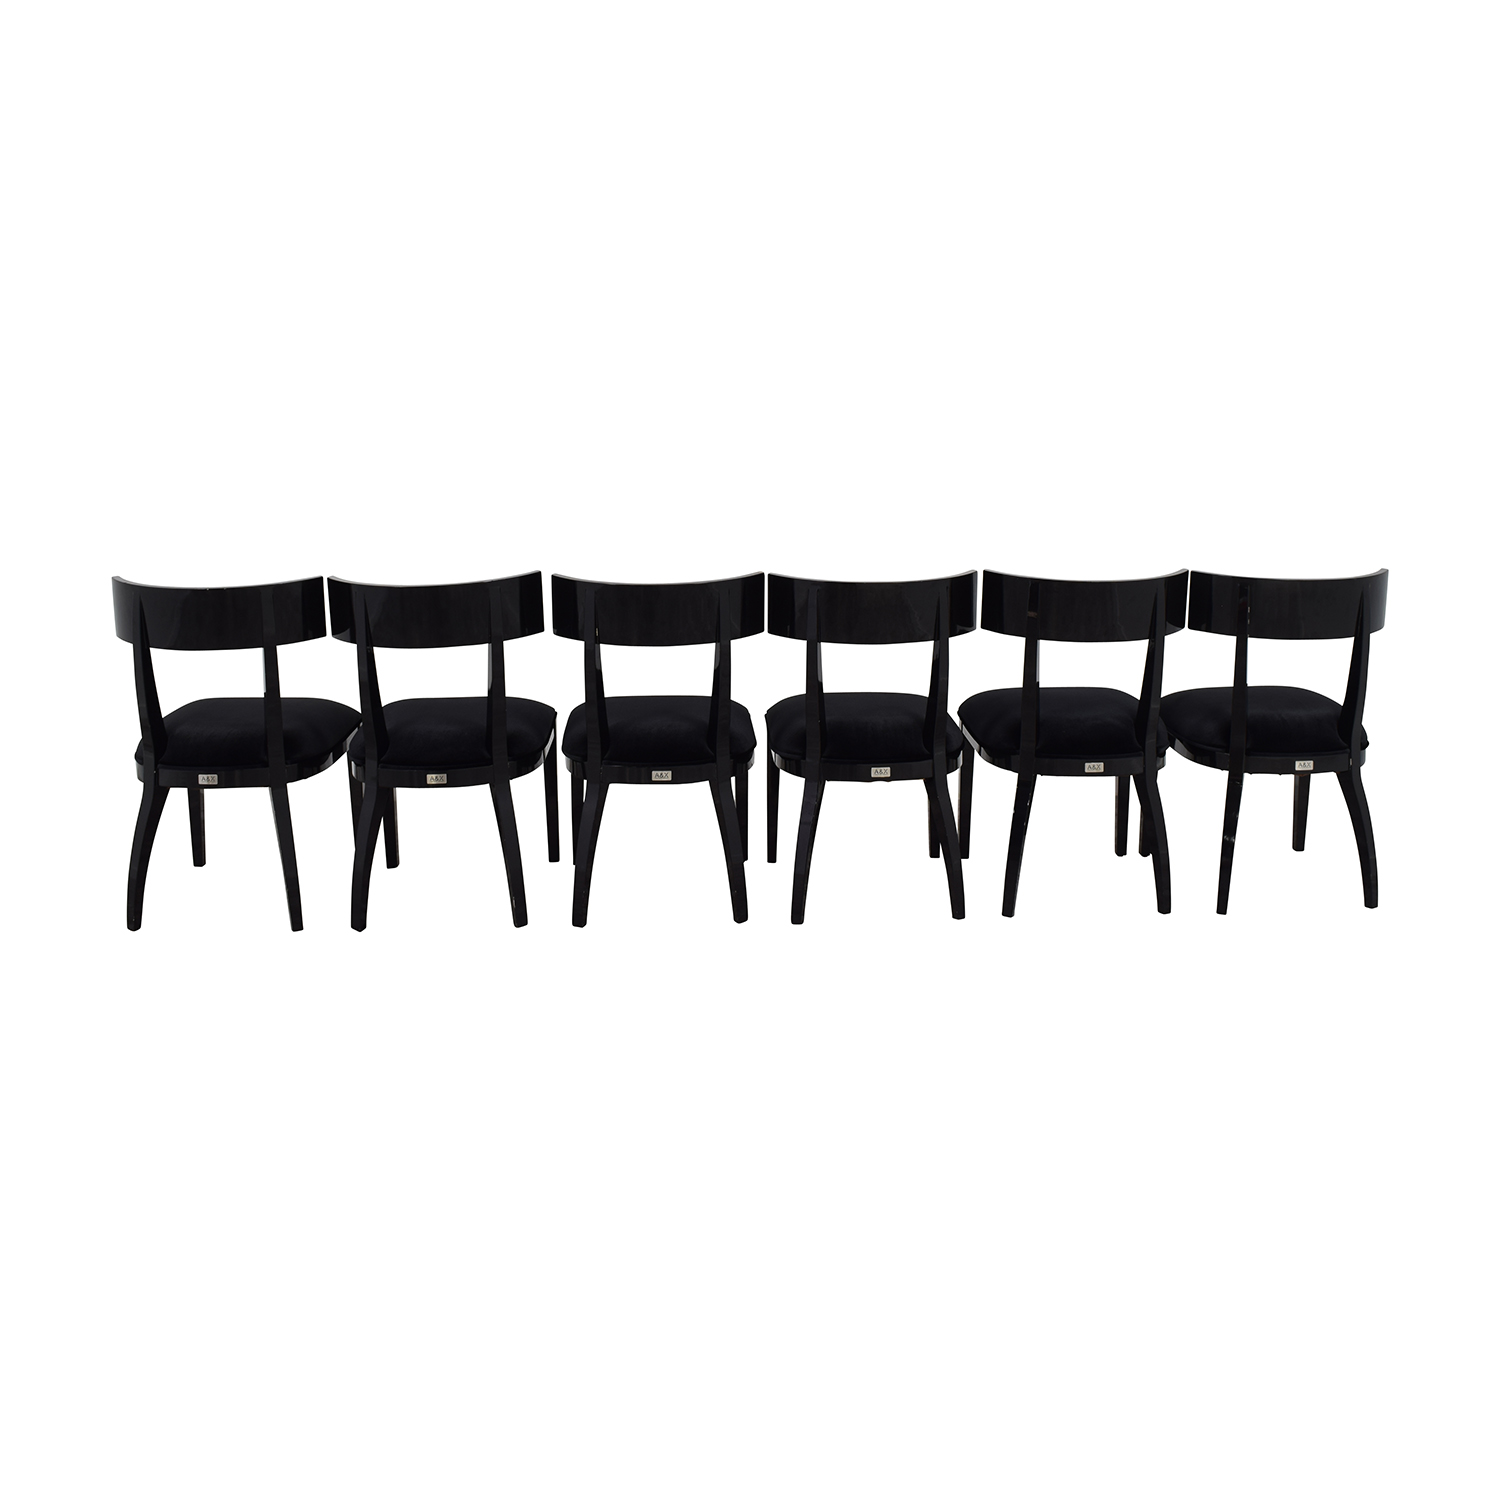 A & X Casa Luxury Collection Art Deco Black Dining Chairs second hand